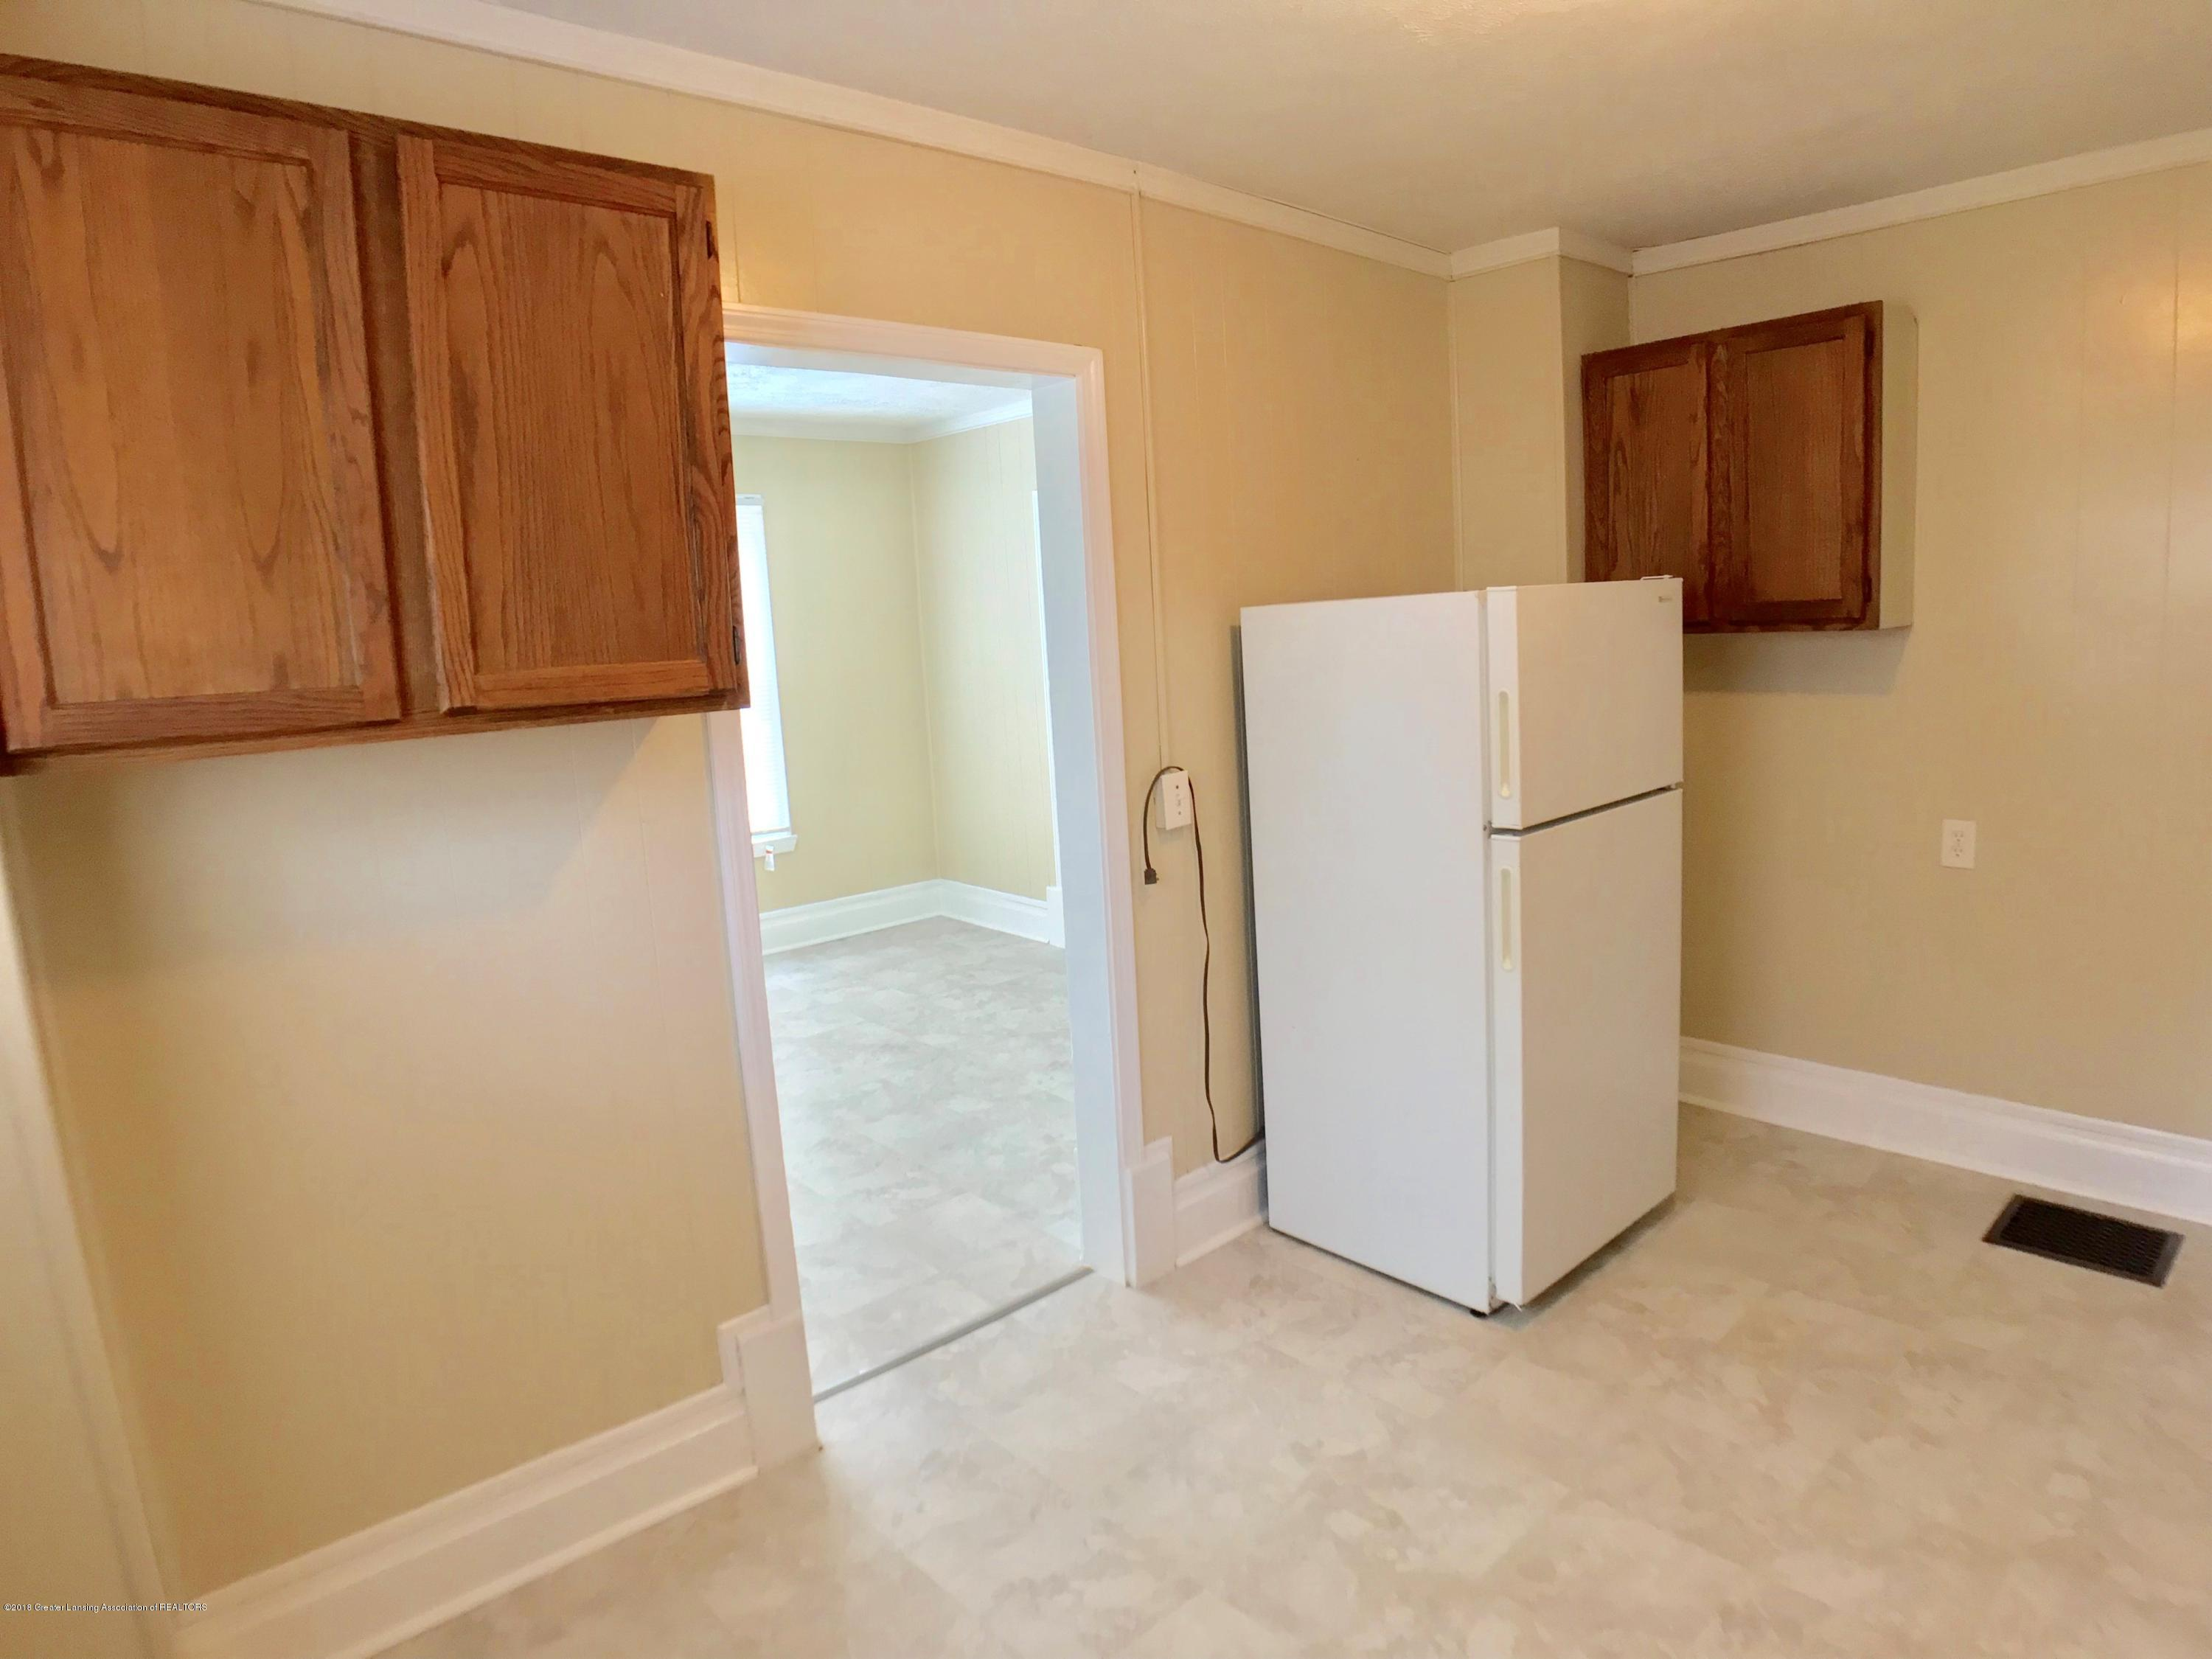 714 N Pine St - Kitchen - 11